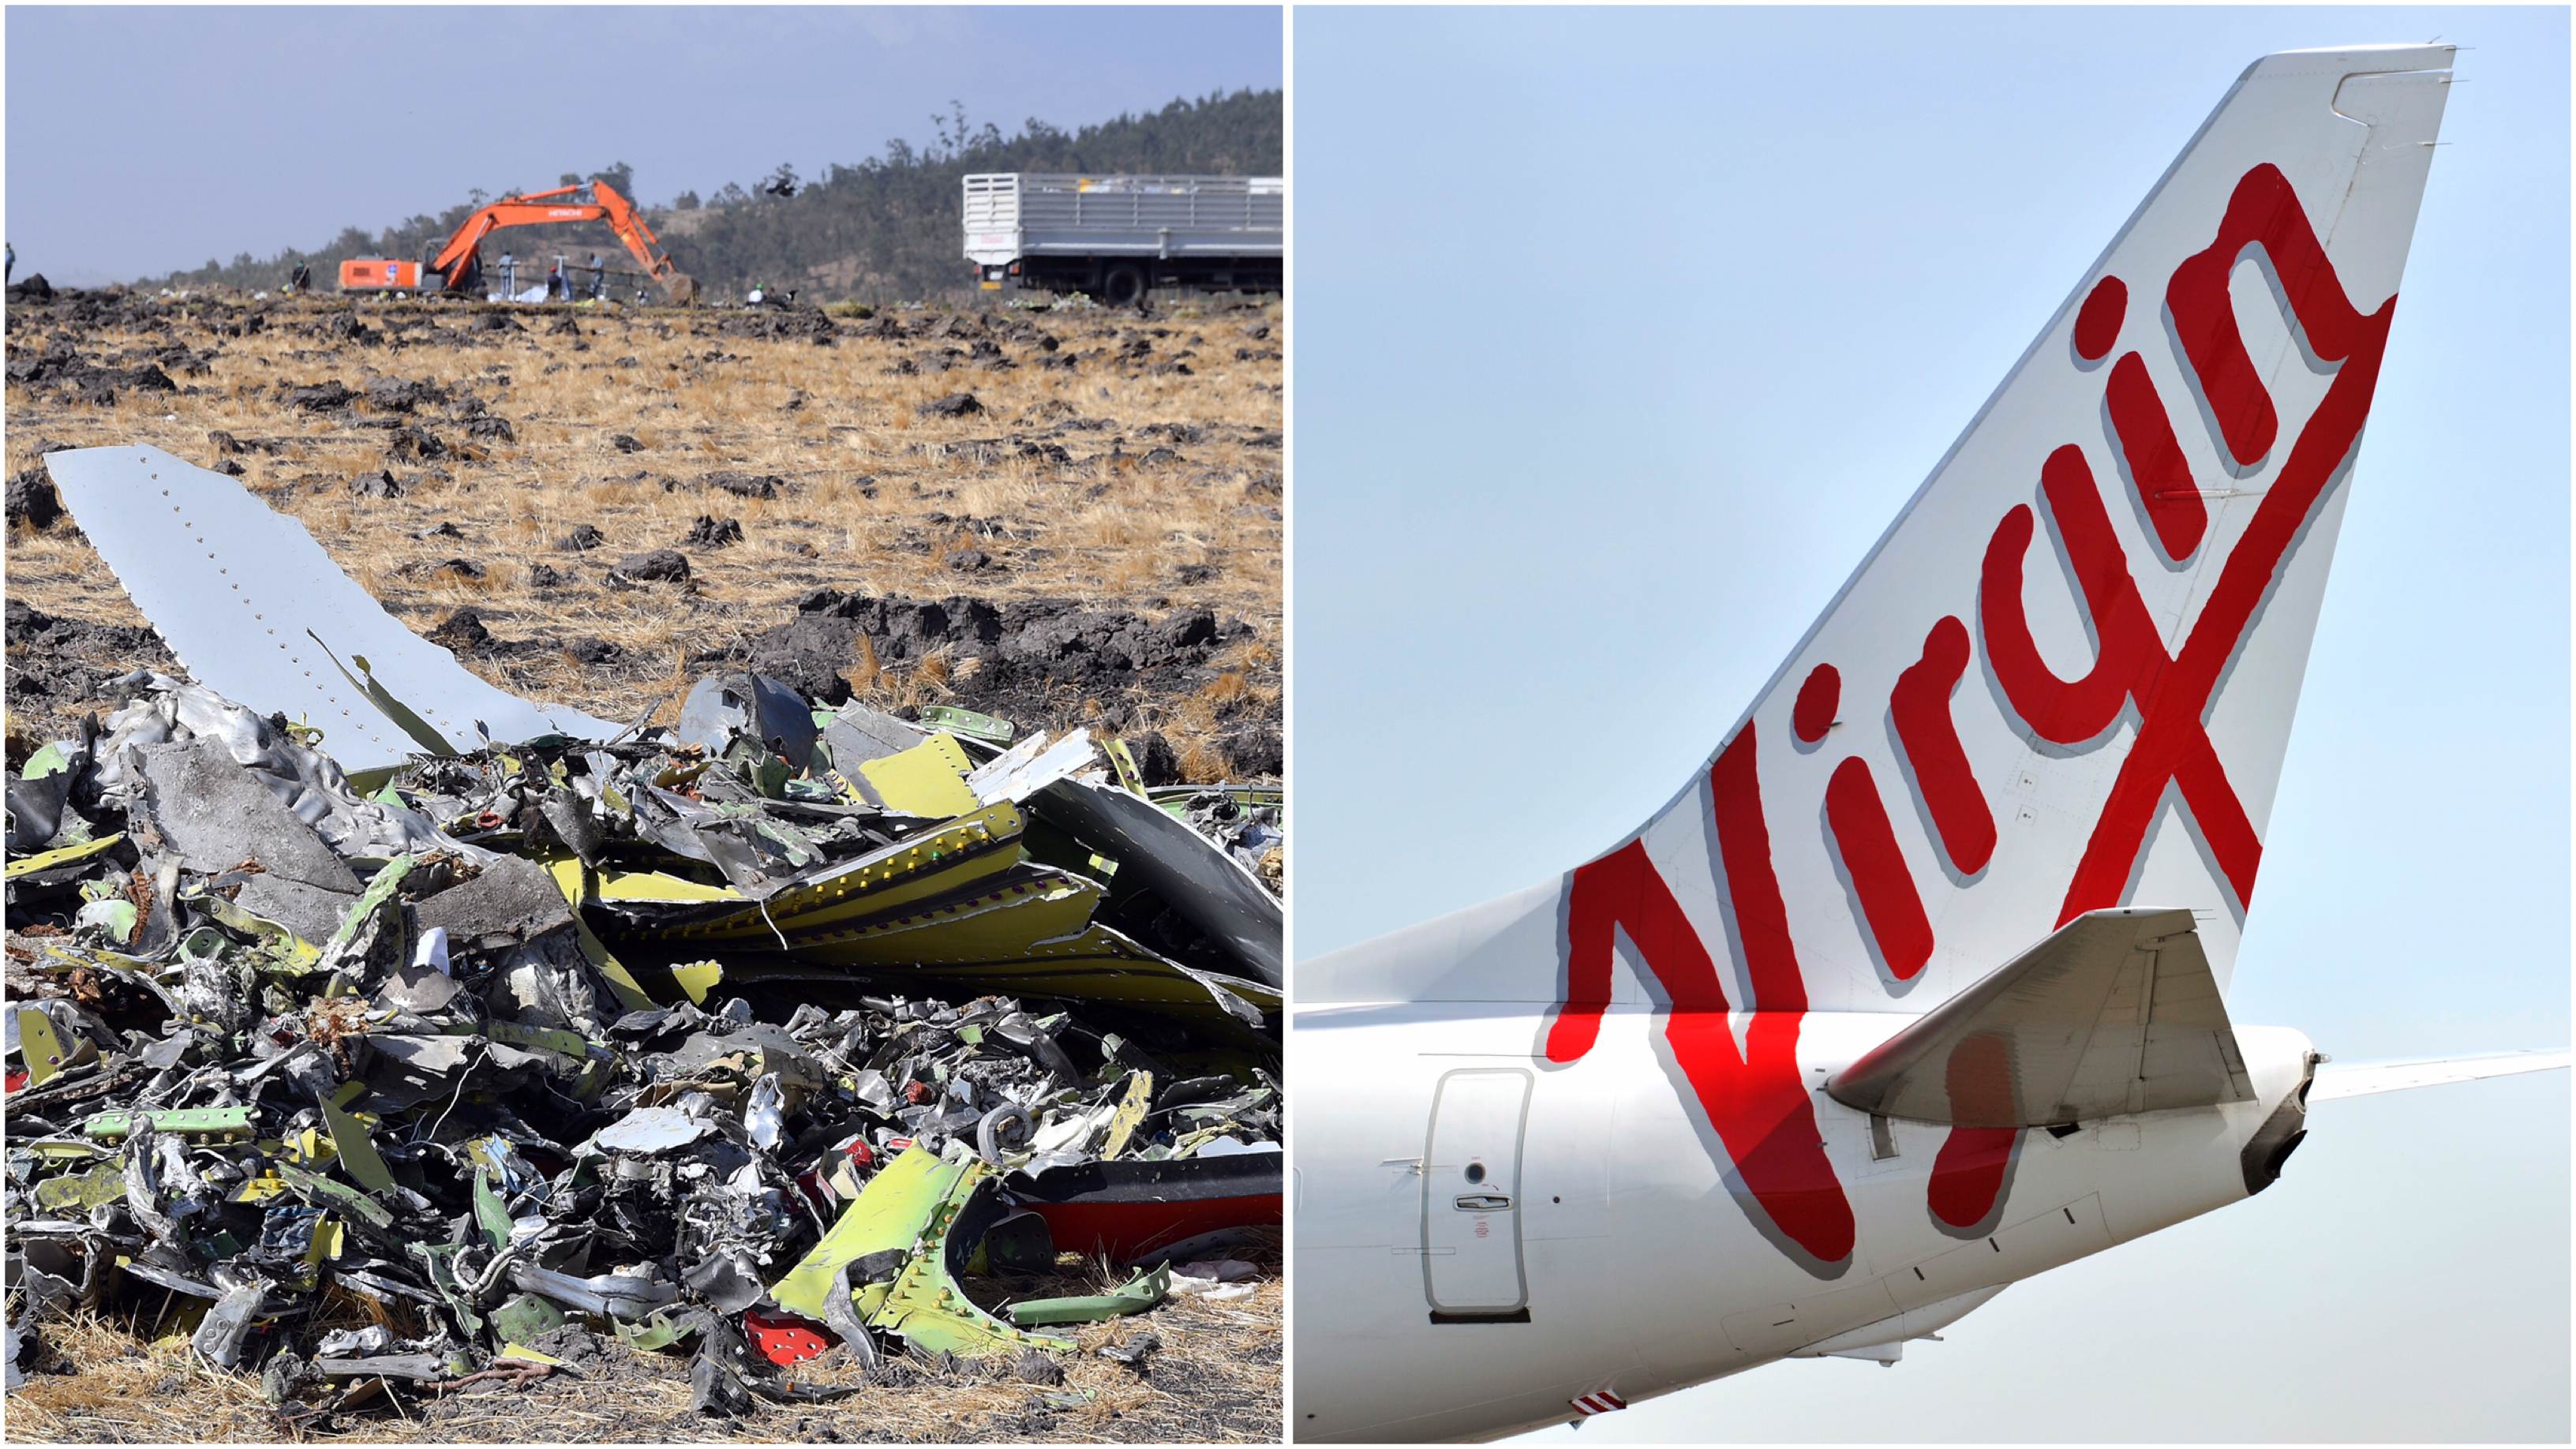 Virgin Australia have put orders of Boeing 737 Max 8s on hold in the wake of two recent fatal crashes involving the aircraft.